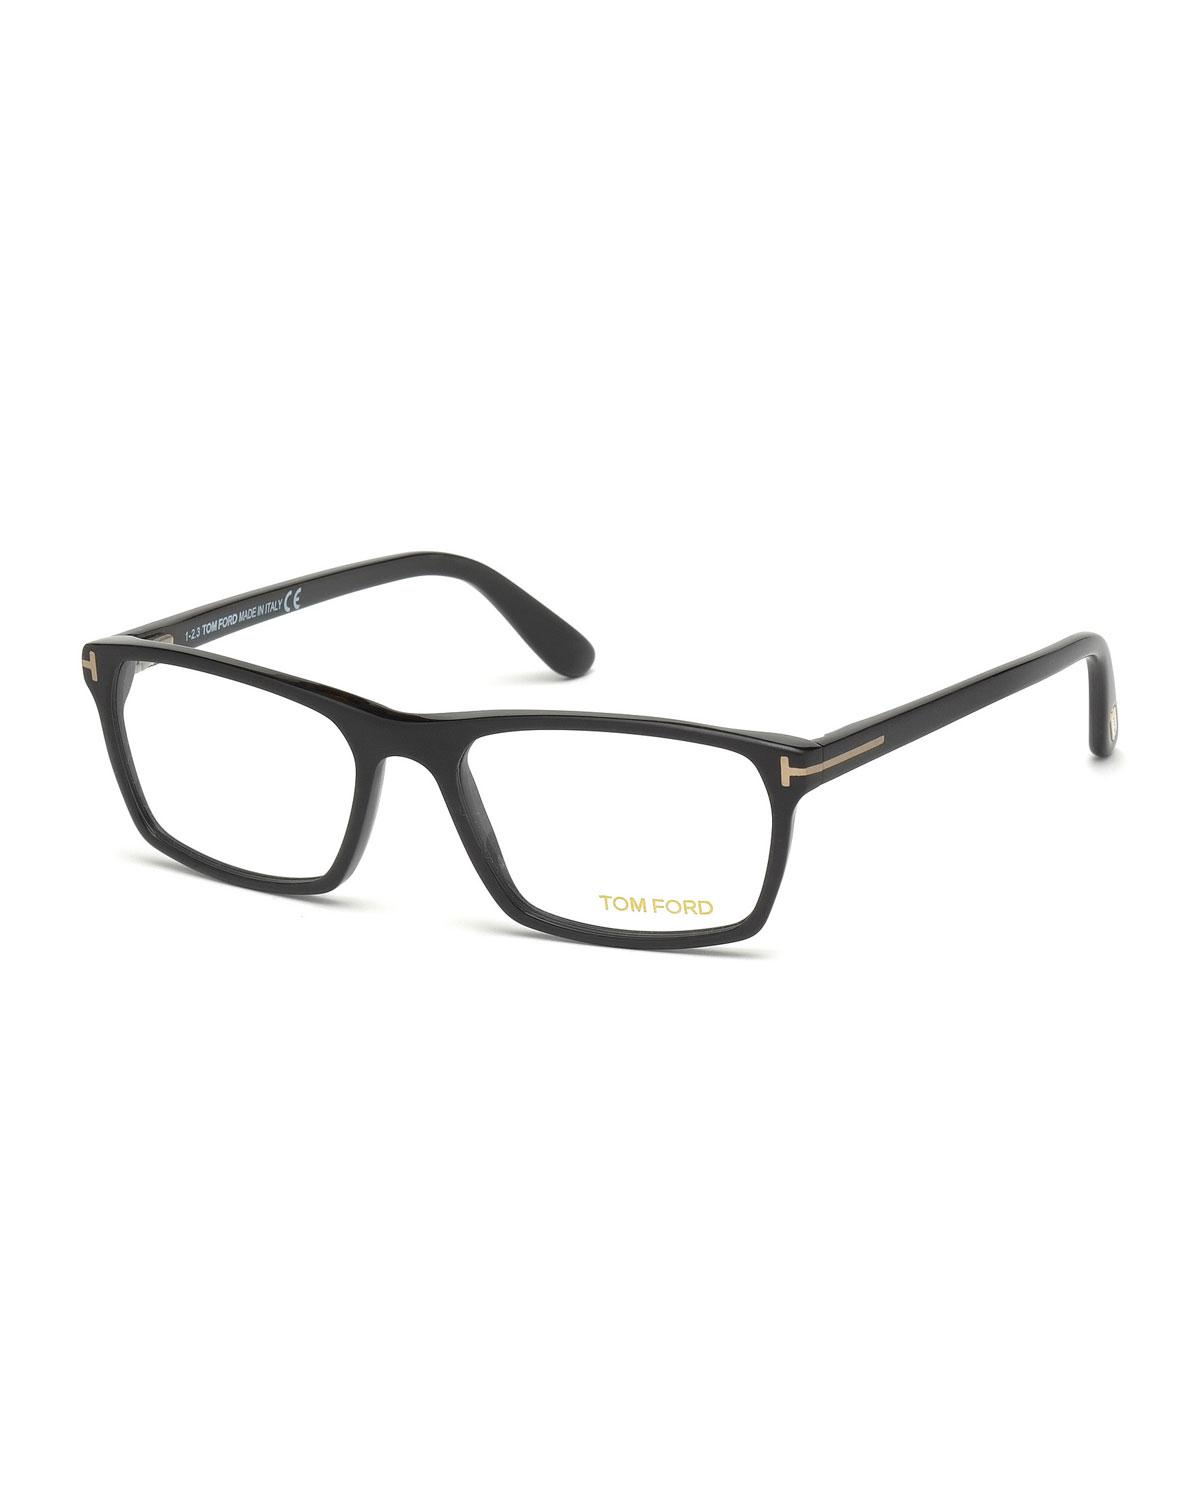 86c1bb02205ef Tom Ford - Multicolor Matte Acetate Square Optical Glasses for Men - Lyst.  View fullscreen